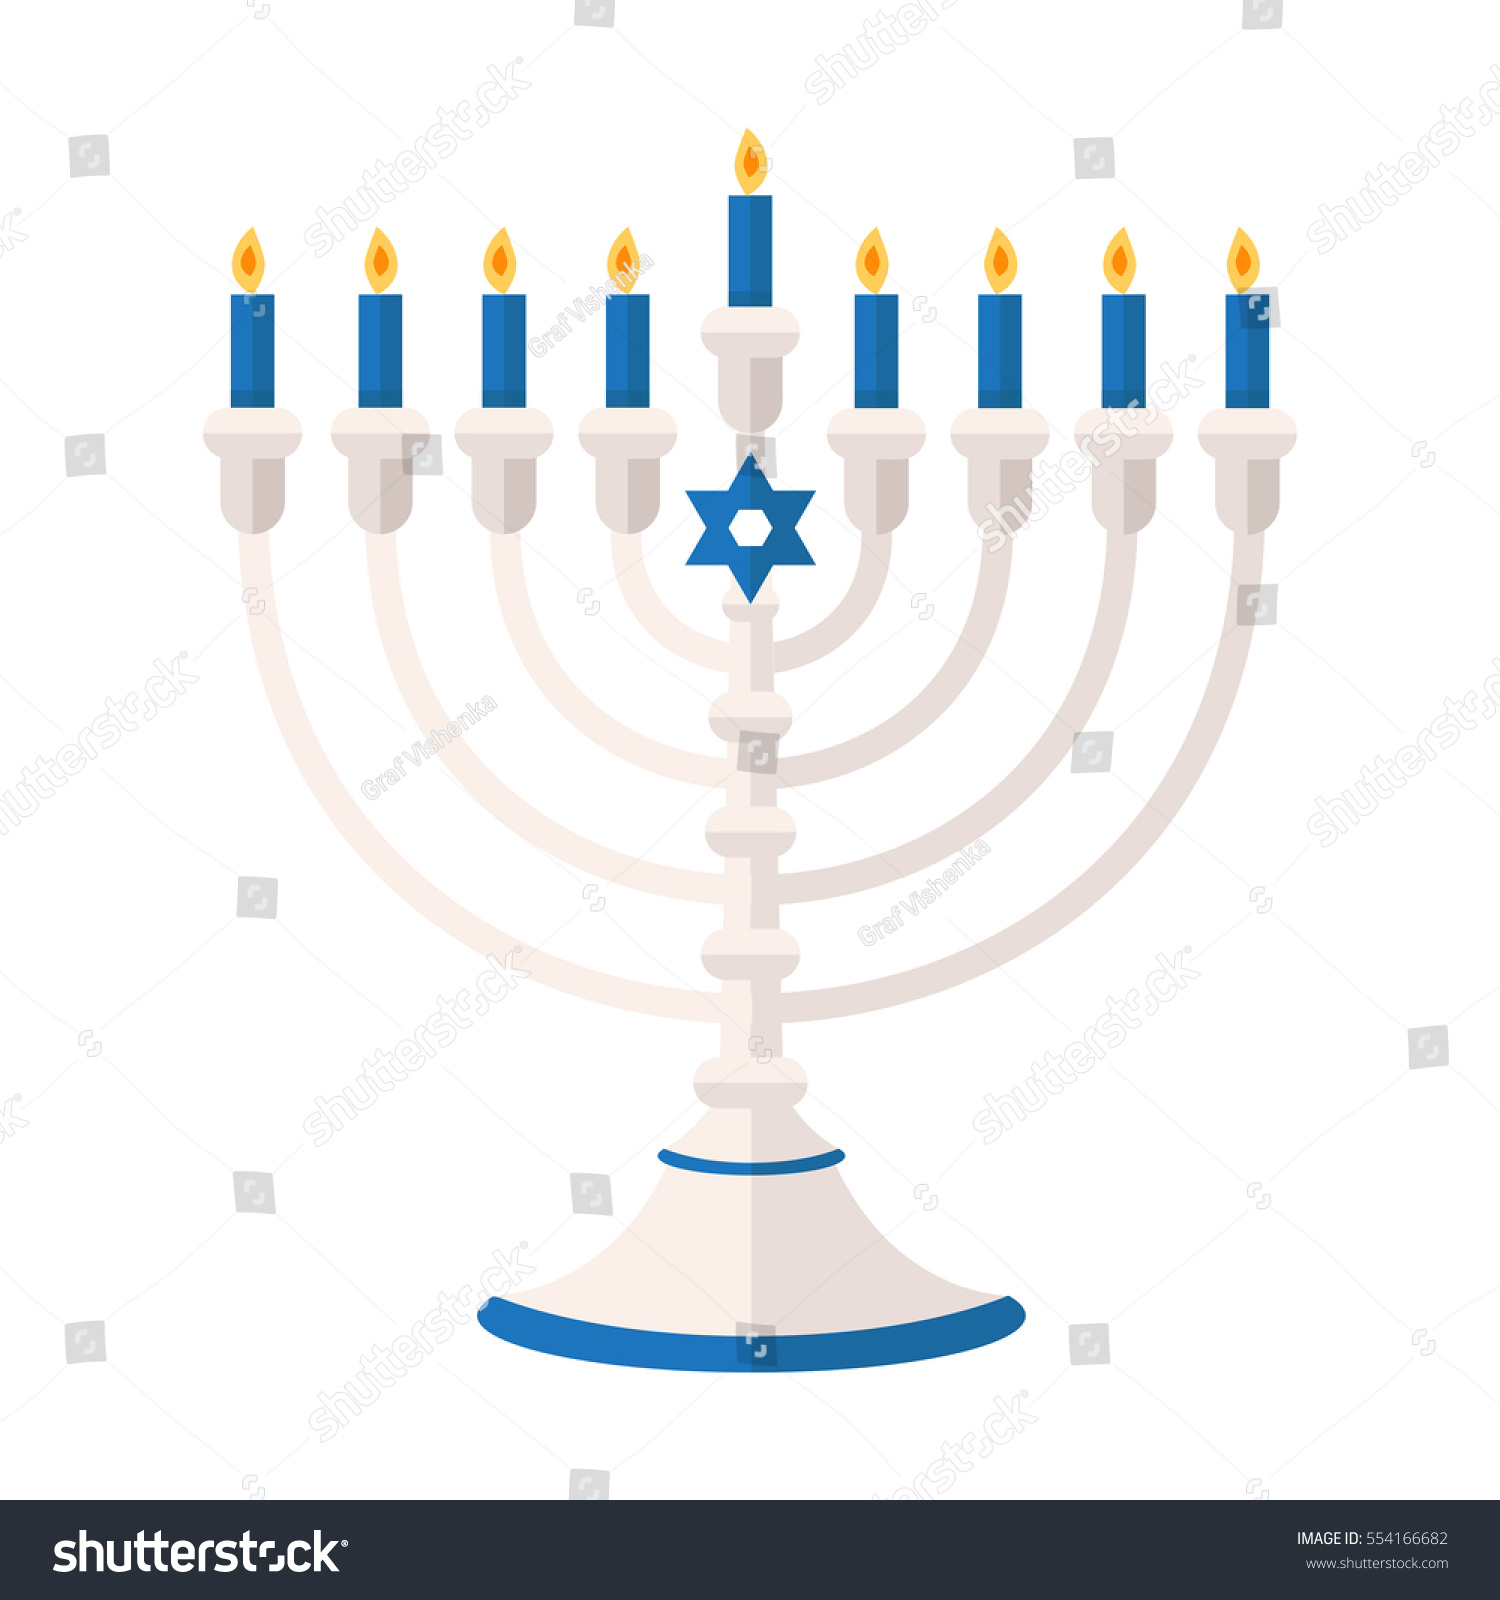 Image Result For Royalty Free Jewish Music